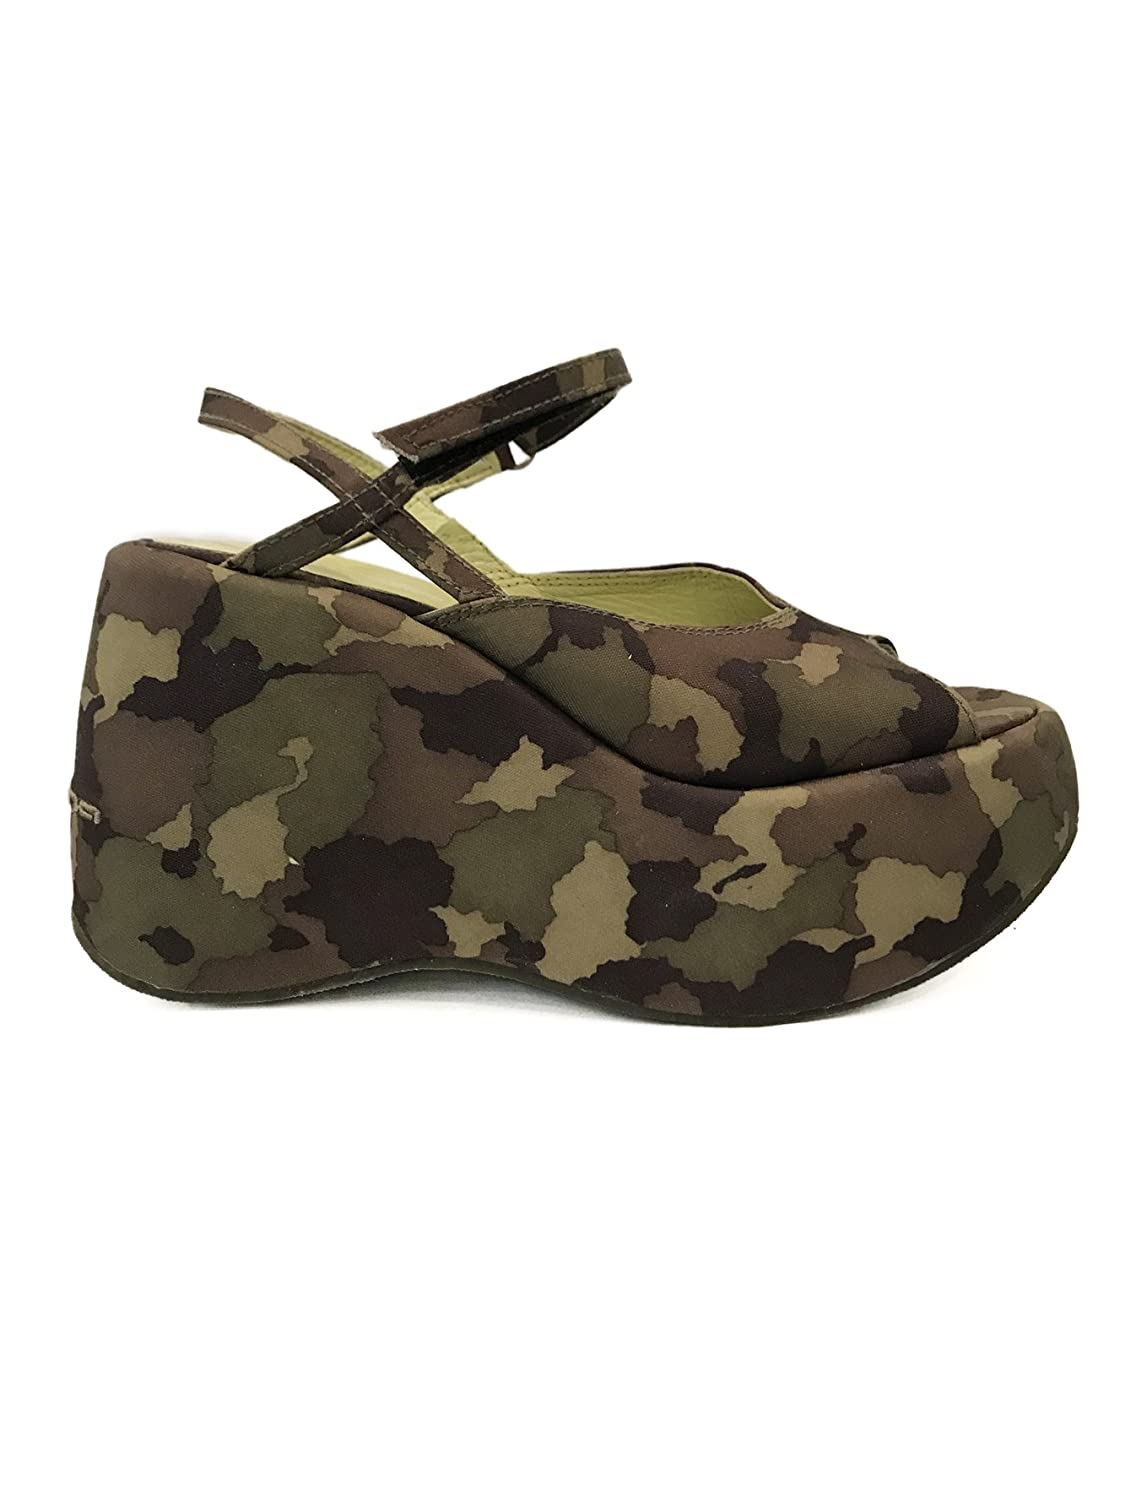 Fornarina PEF1409-350 Vintage Camouflage Sandals Vintage with with Fornarina 10 cm Wedge Camouflage d58d50a - gis9ma7le.space